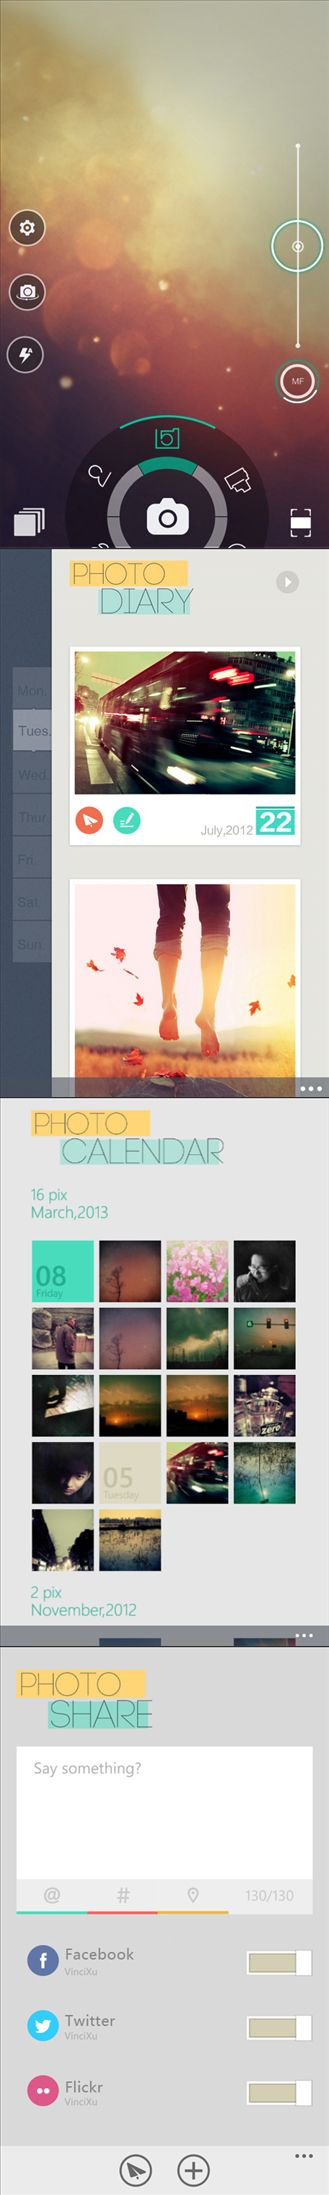 Camera 360 for WIndows Phone 8.  Simple rotary filters for photography + photo diary tools.  Elegant and simple flat UI